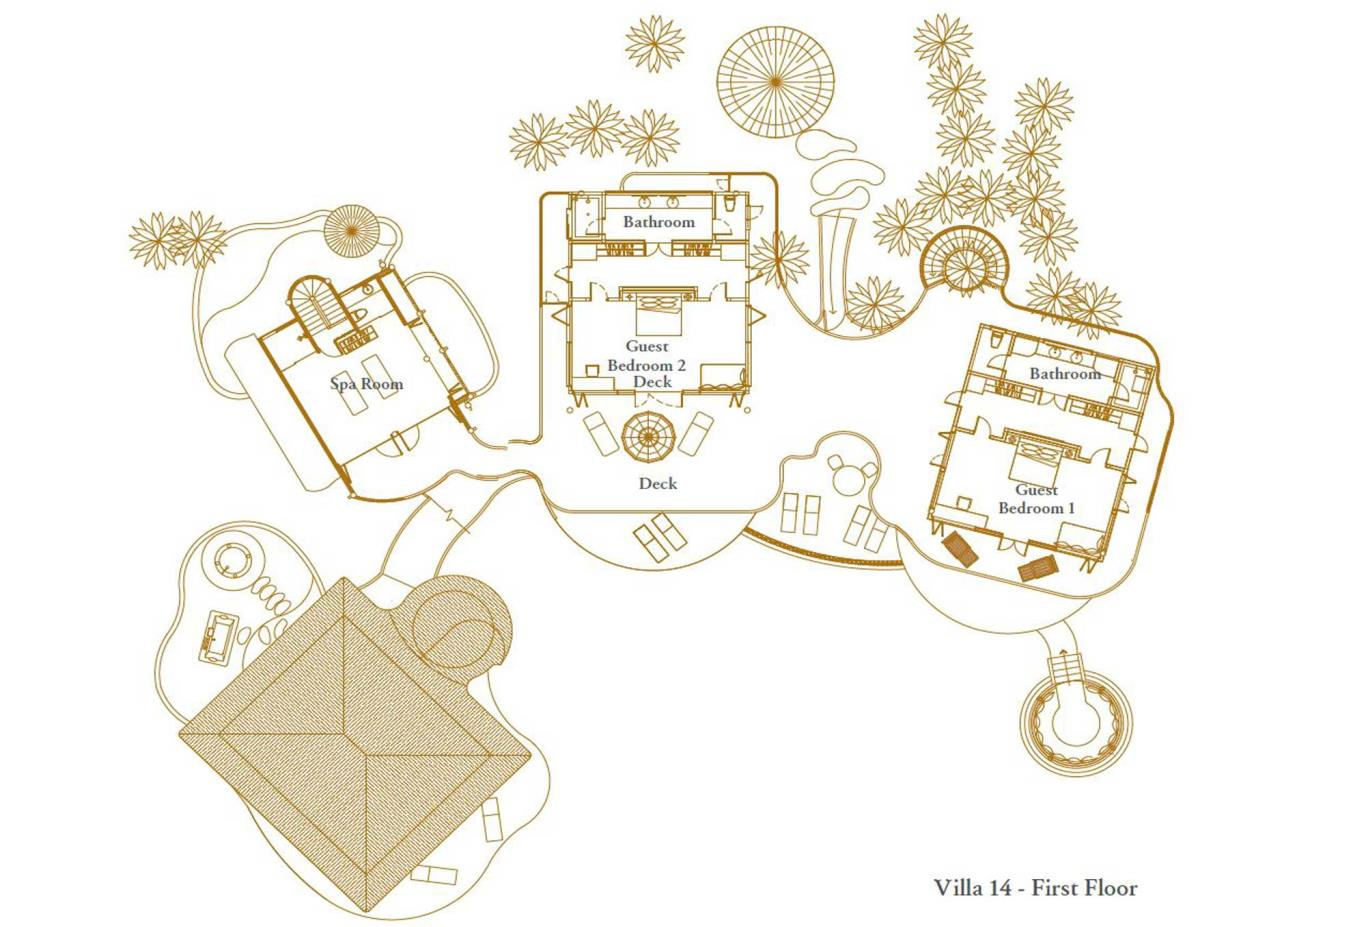 Villa 14 First Floor Floorplan